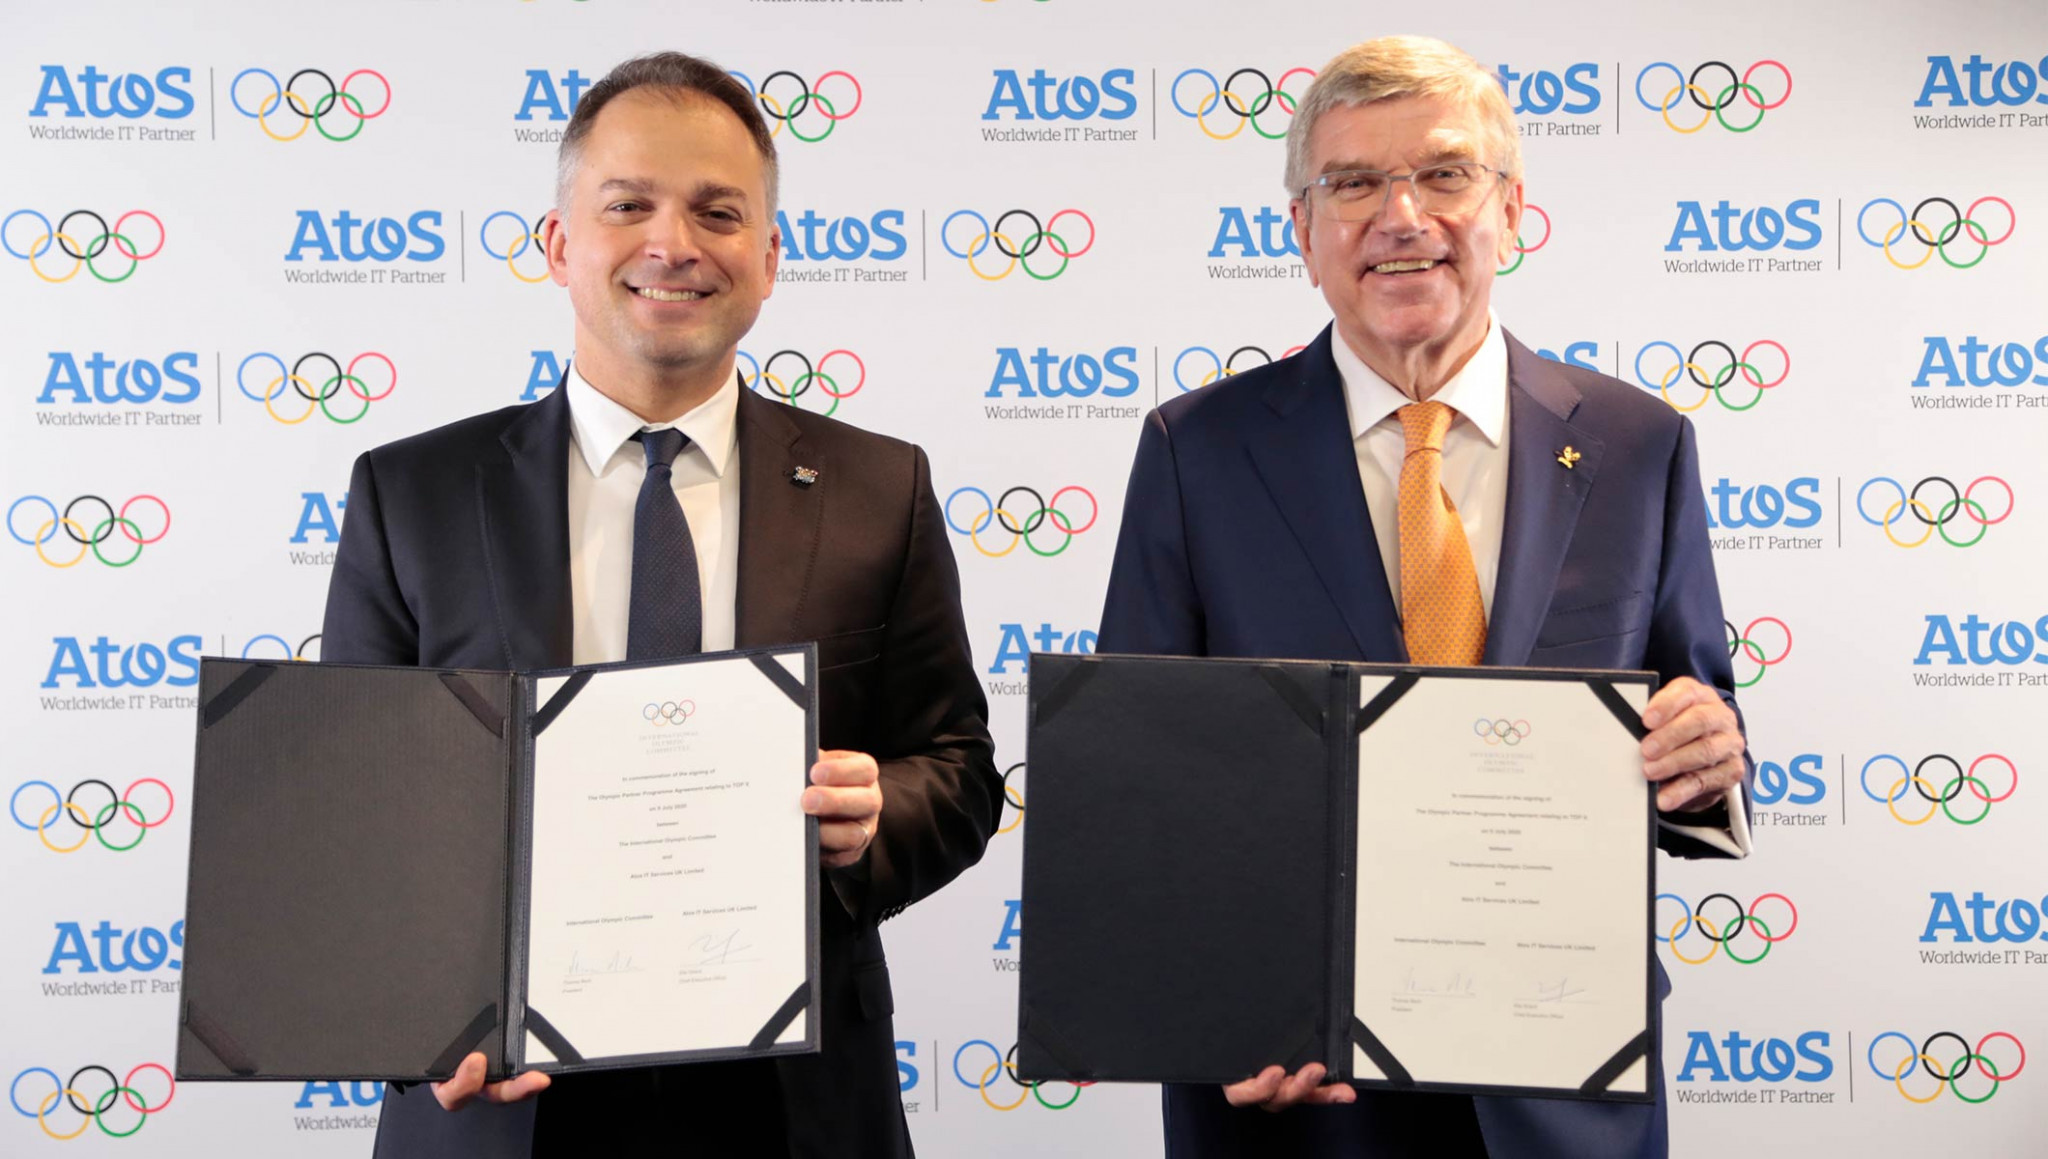 IOC President Thomas Bach, right, signed the deal with Atos chief executive Elie Girard ©IOC